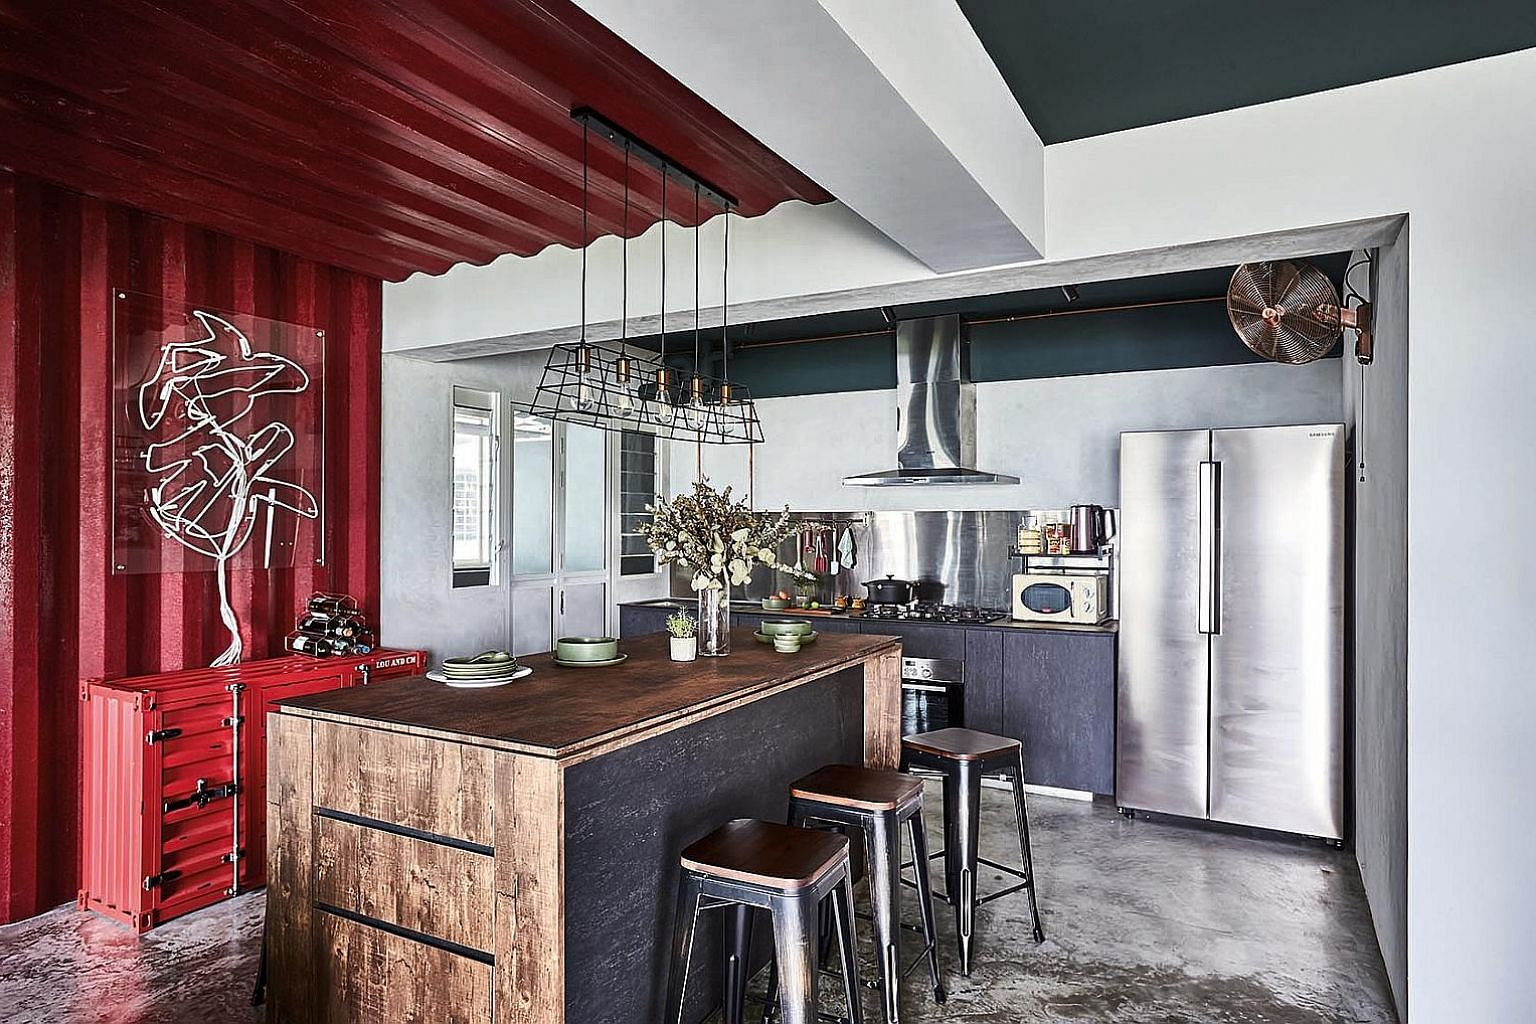 The home owners opted for a green study wall because they love plants and greenery. Corrugated galvanised iron sheets create striking backdrops in the kitchen (above) and living room, while an armchair made from aeroplane fuselage complements the industri